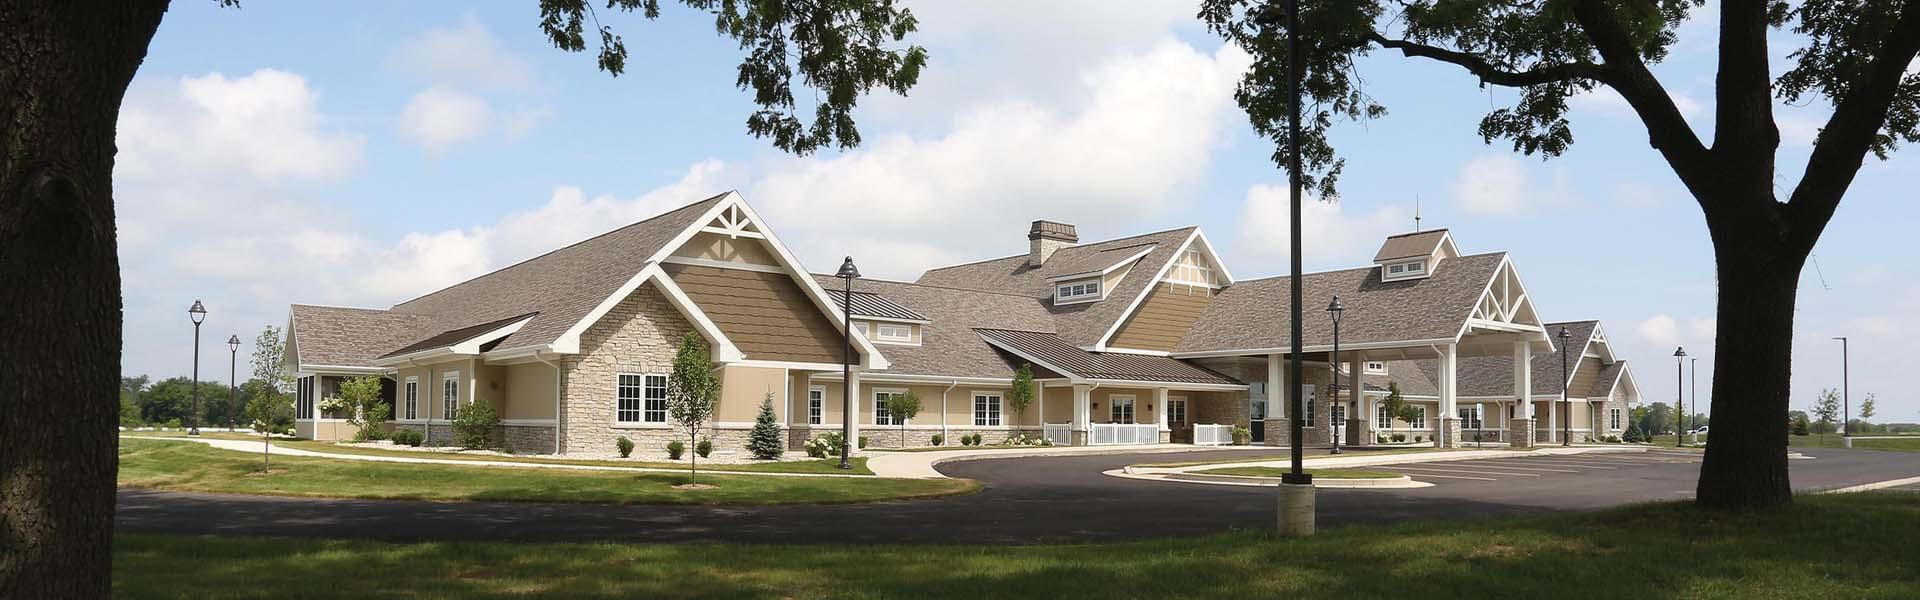 Photo of Golden Years, Assisted Living, Nursing Home, Independent Living, CCRC, Walworth, WI 1